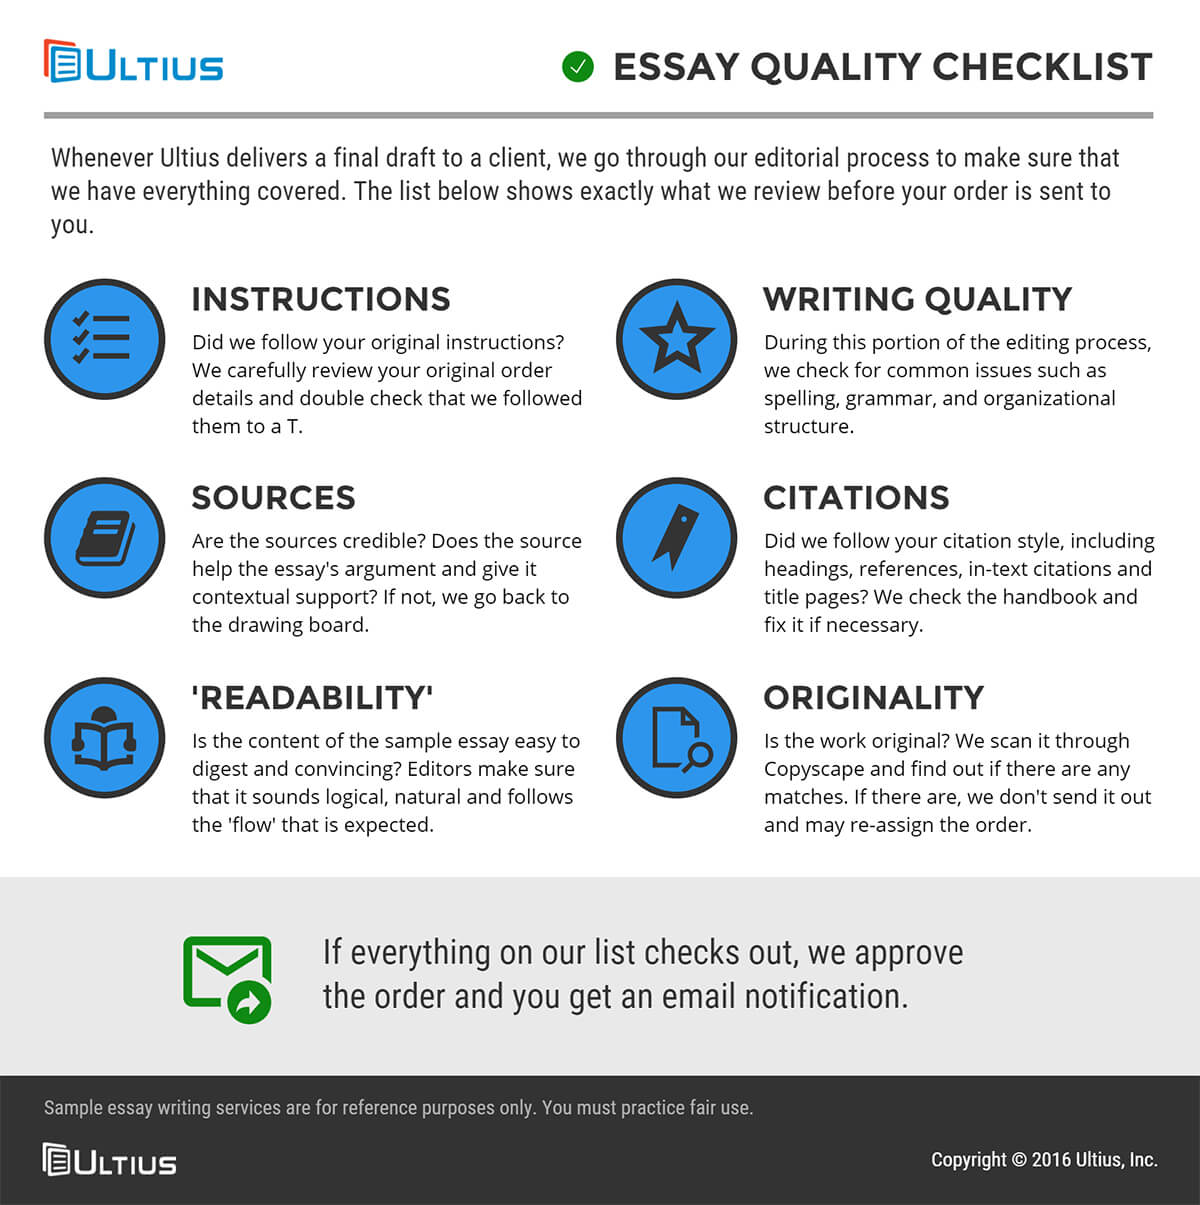 001 Essay Quality Checklist Order Online Incredible Full